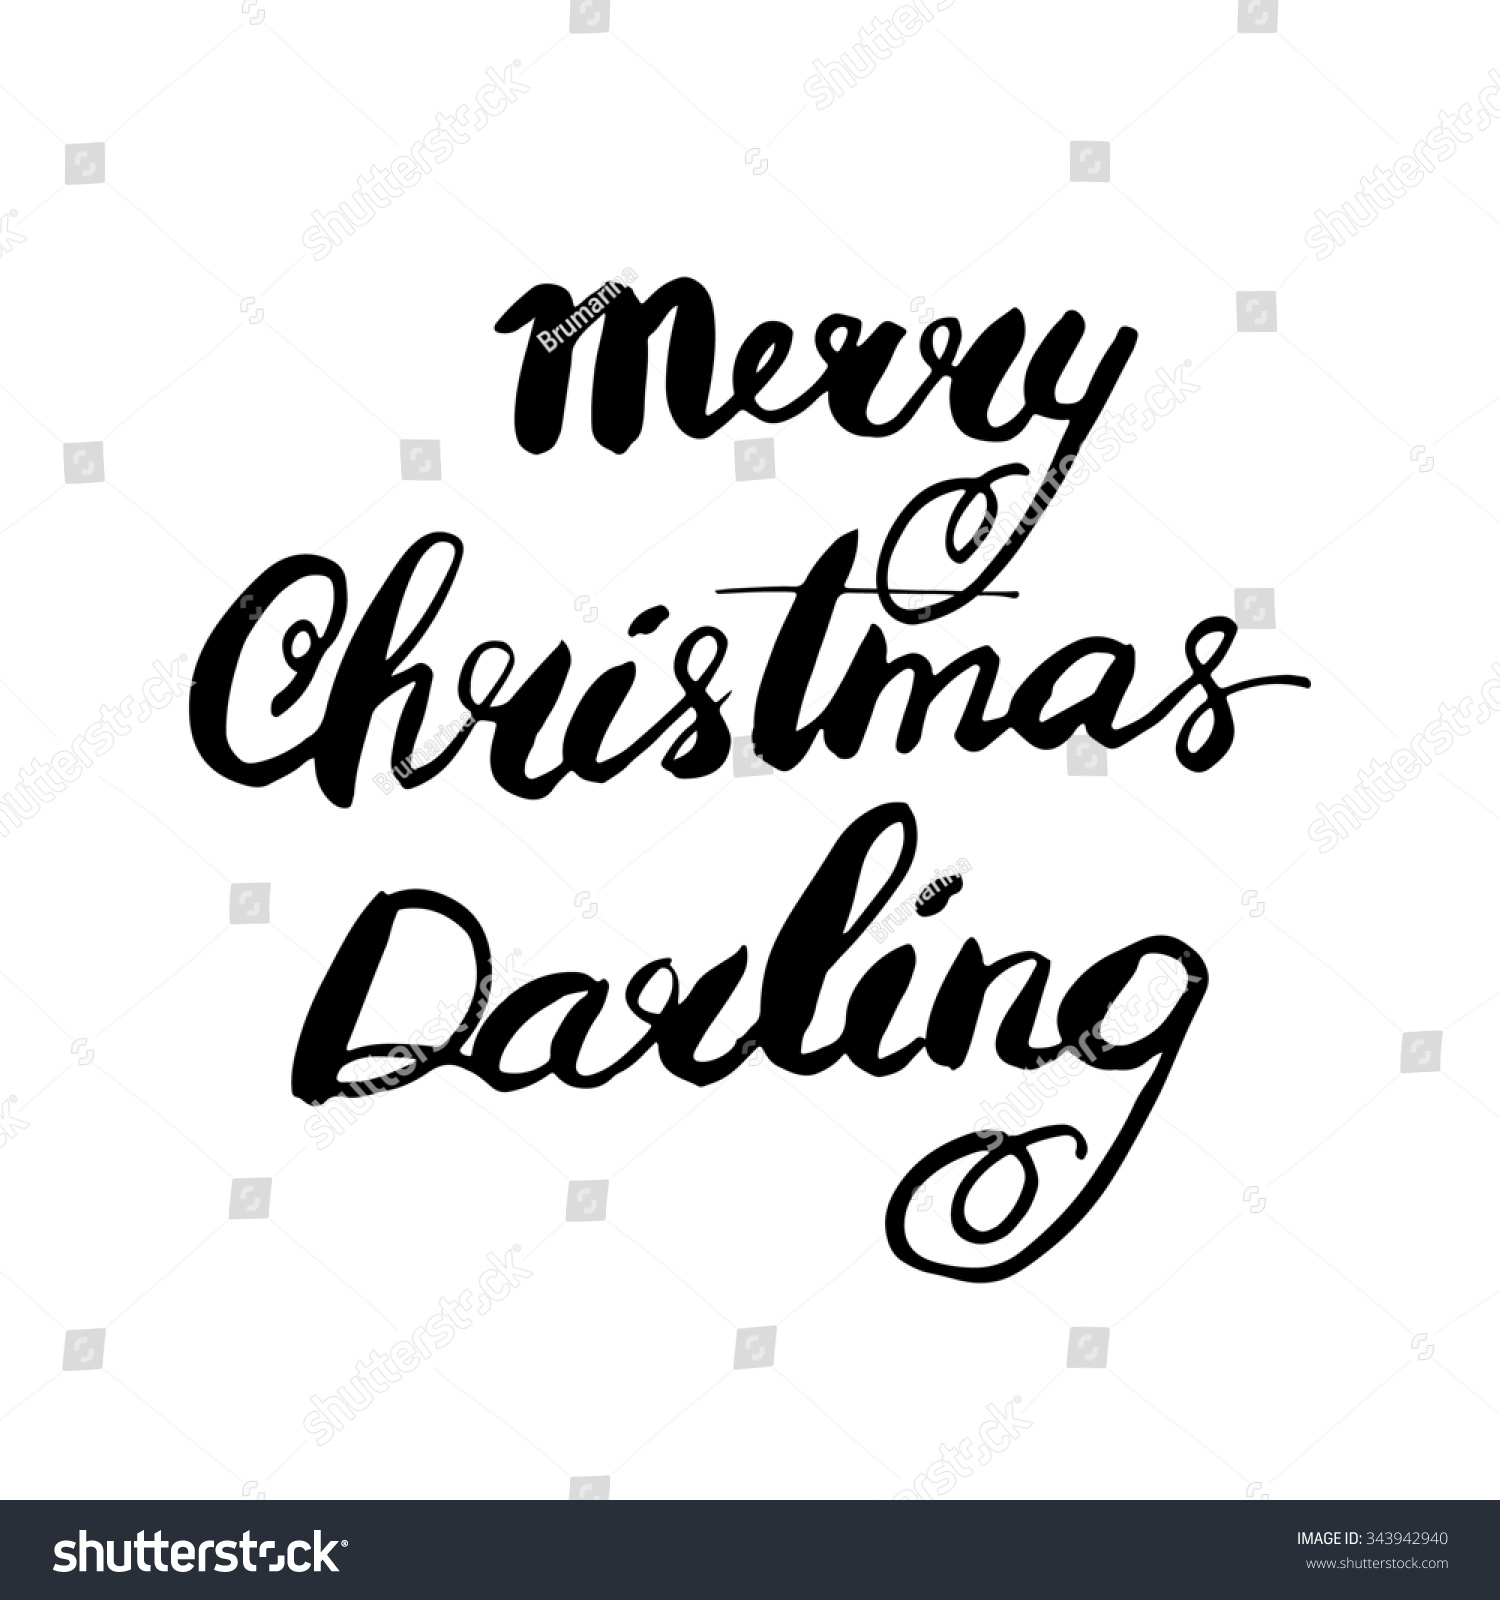 Merry Christmas Darling.Merry Christmas Darling Hand Lettered Calligraphic Stock